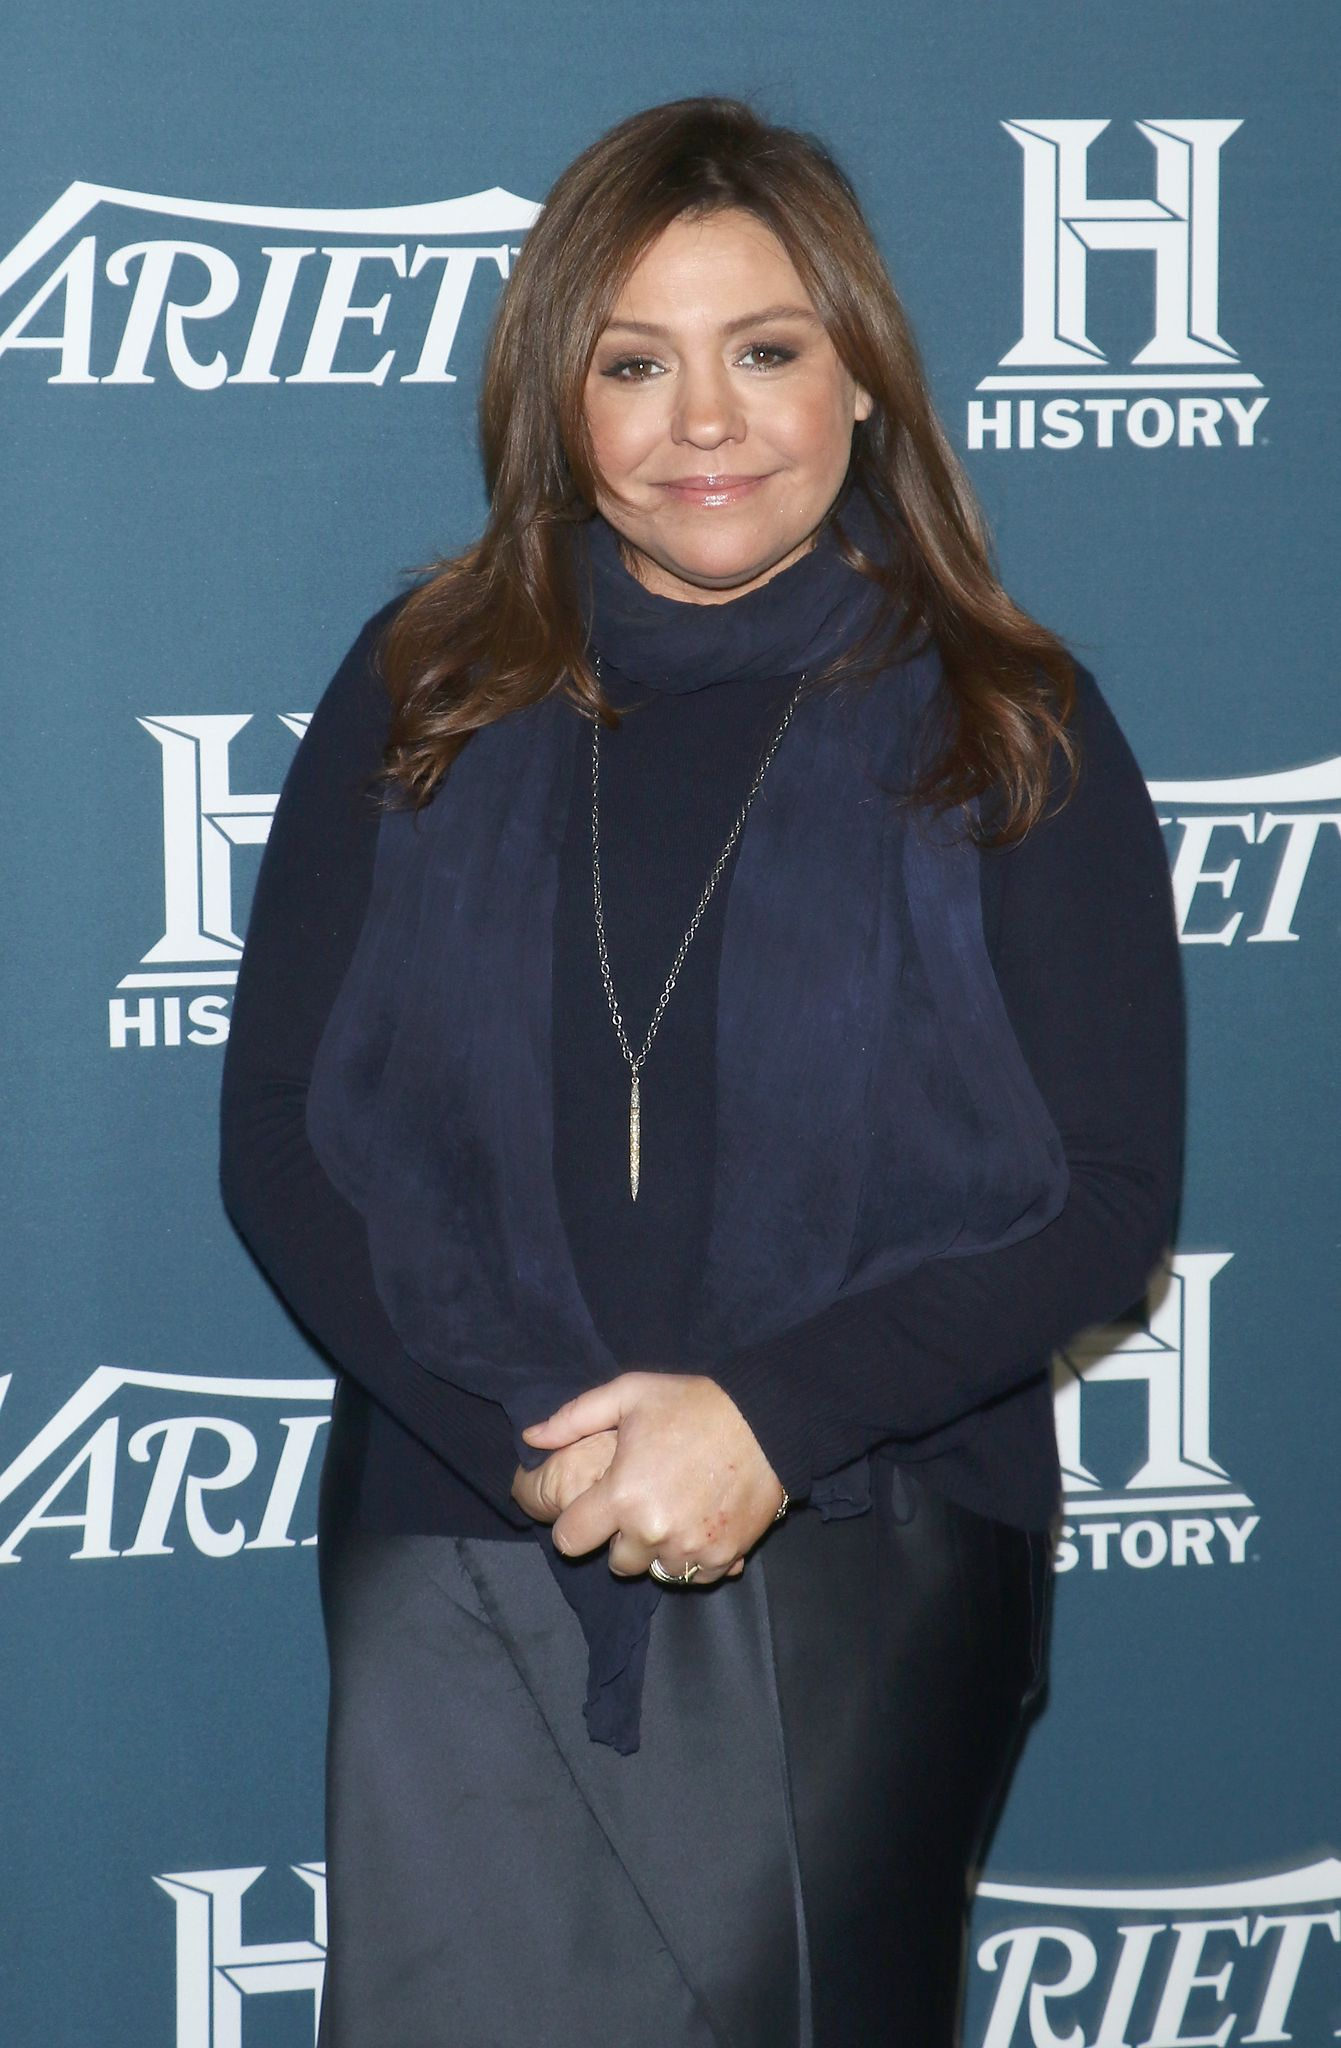 Rachael Ray at Cipriani Downtown on November 12, 2018 in New York City. | Photo: Getty Images